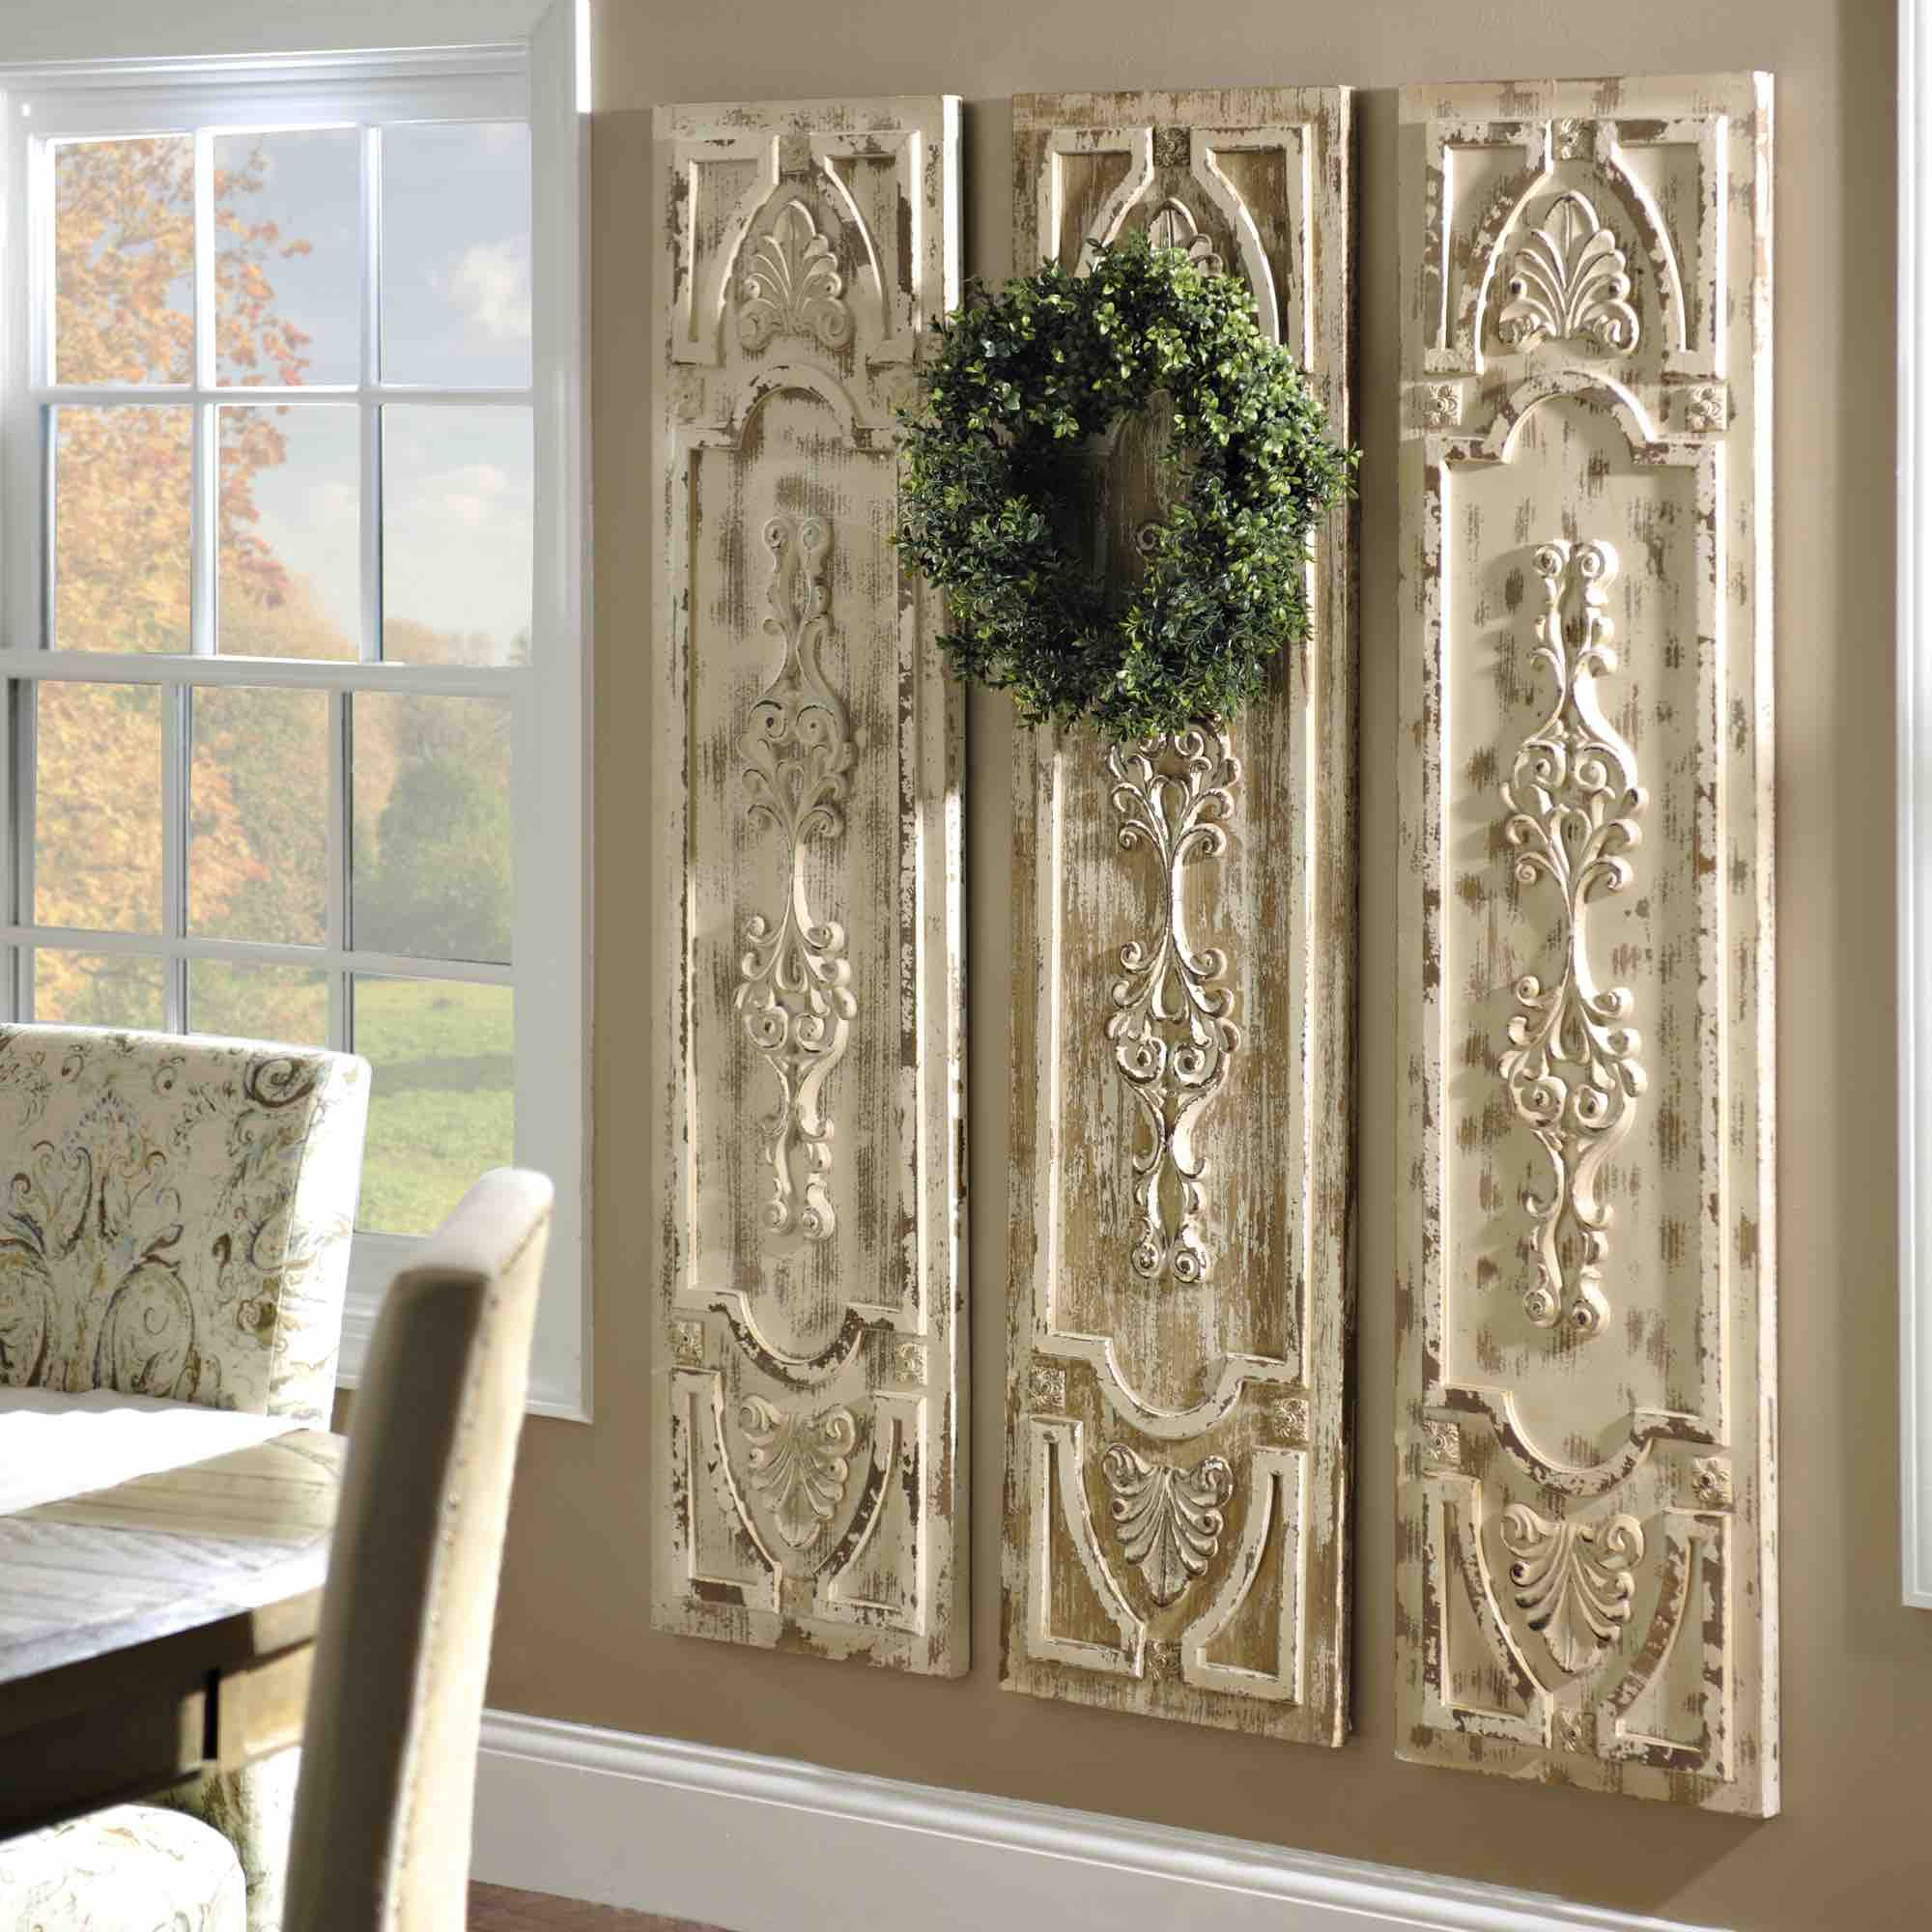 1 Piece Ortie Panel Wall Decor Within Best And Newest Product Details Distressed Vintage Door Wooden Panel In  (View 6 of 20)